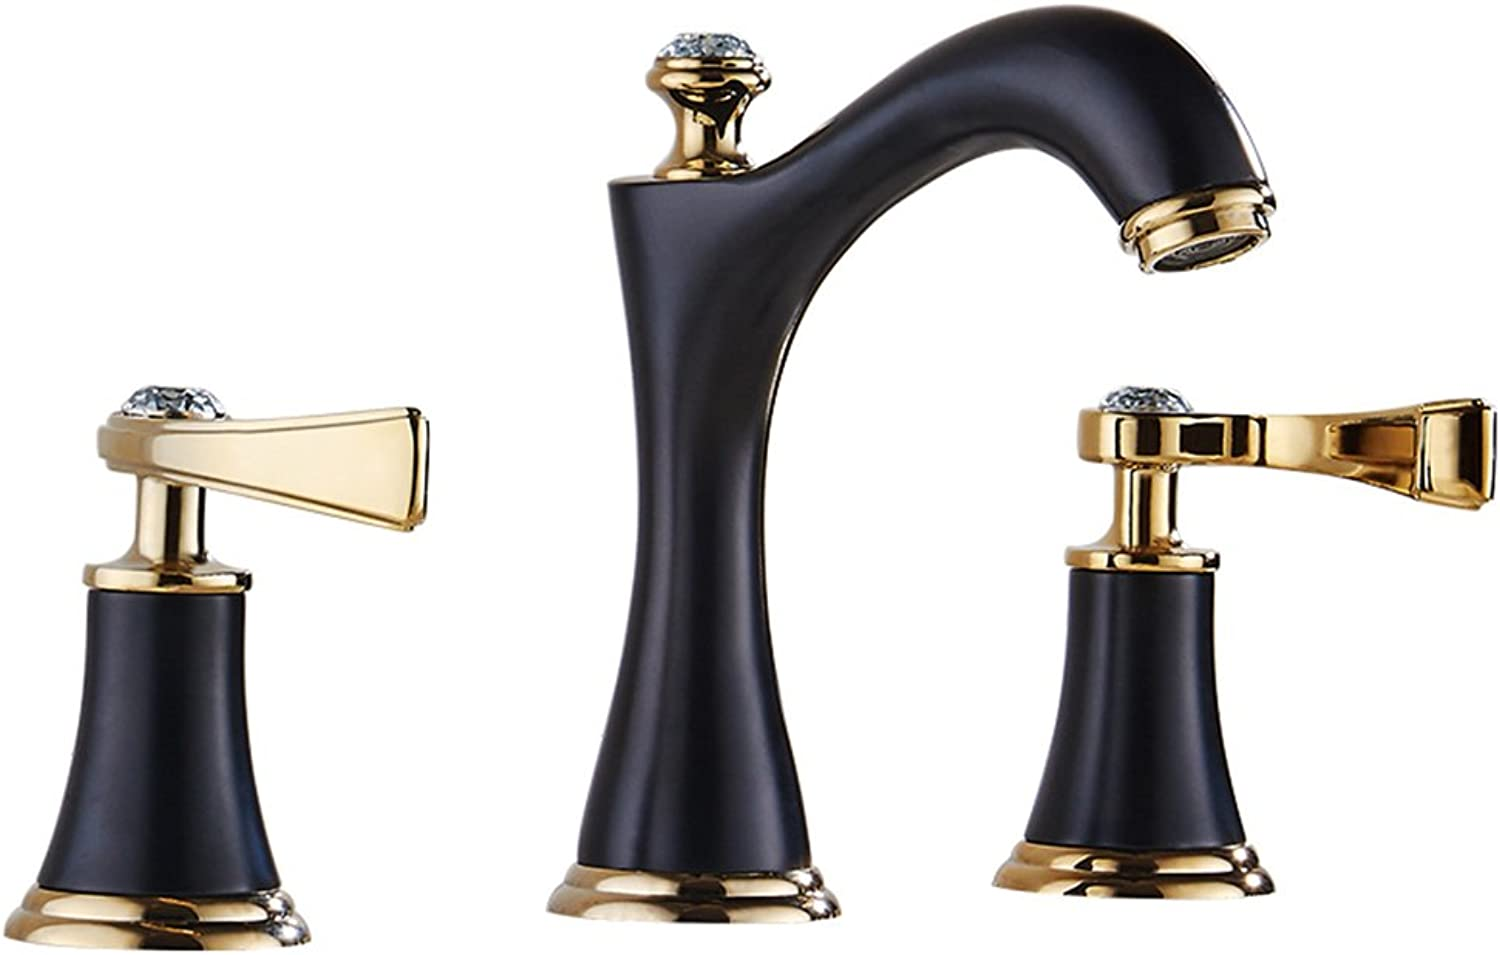 QIDI Kitchen Faucet Black Retro Three Holes Hot And Cold Stainless Steel